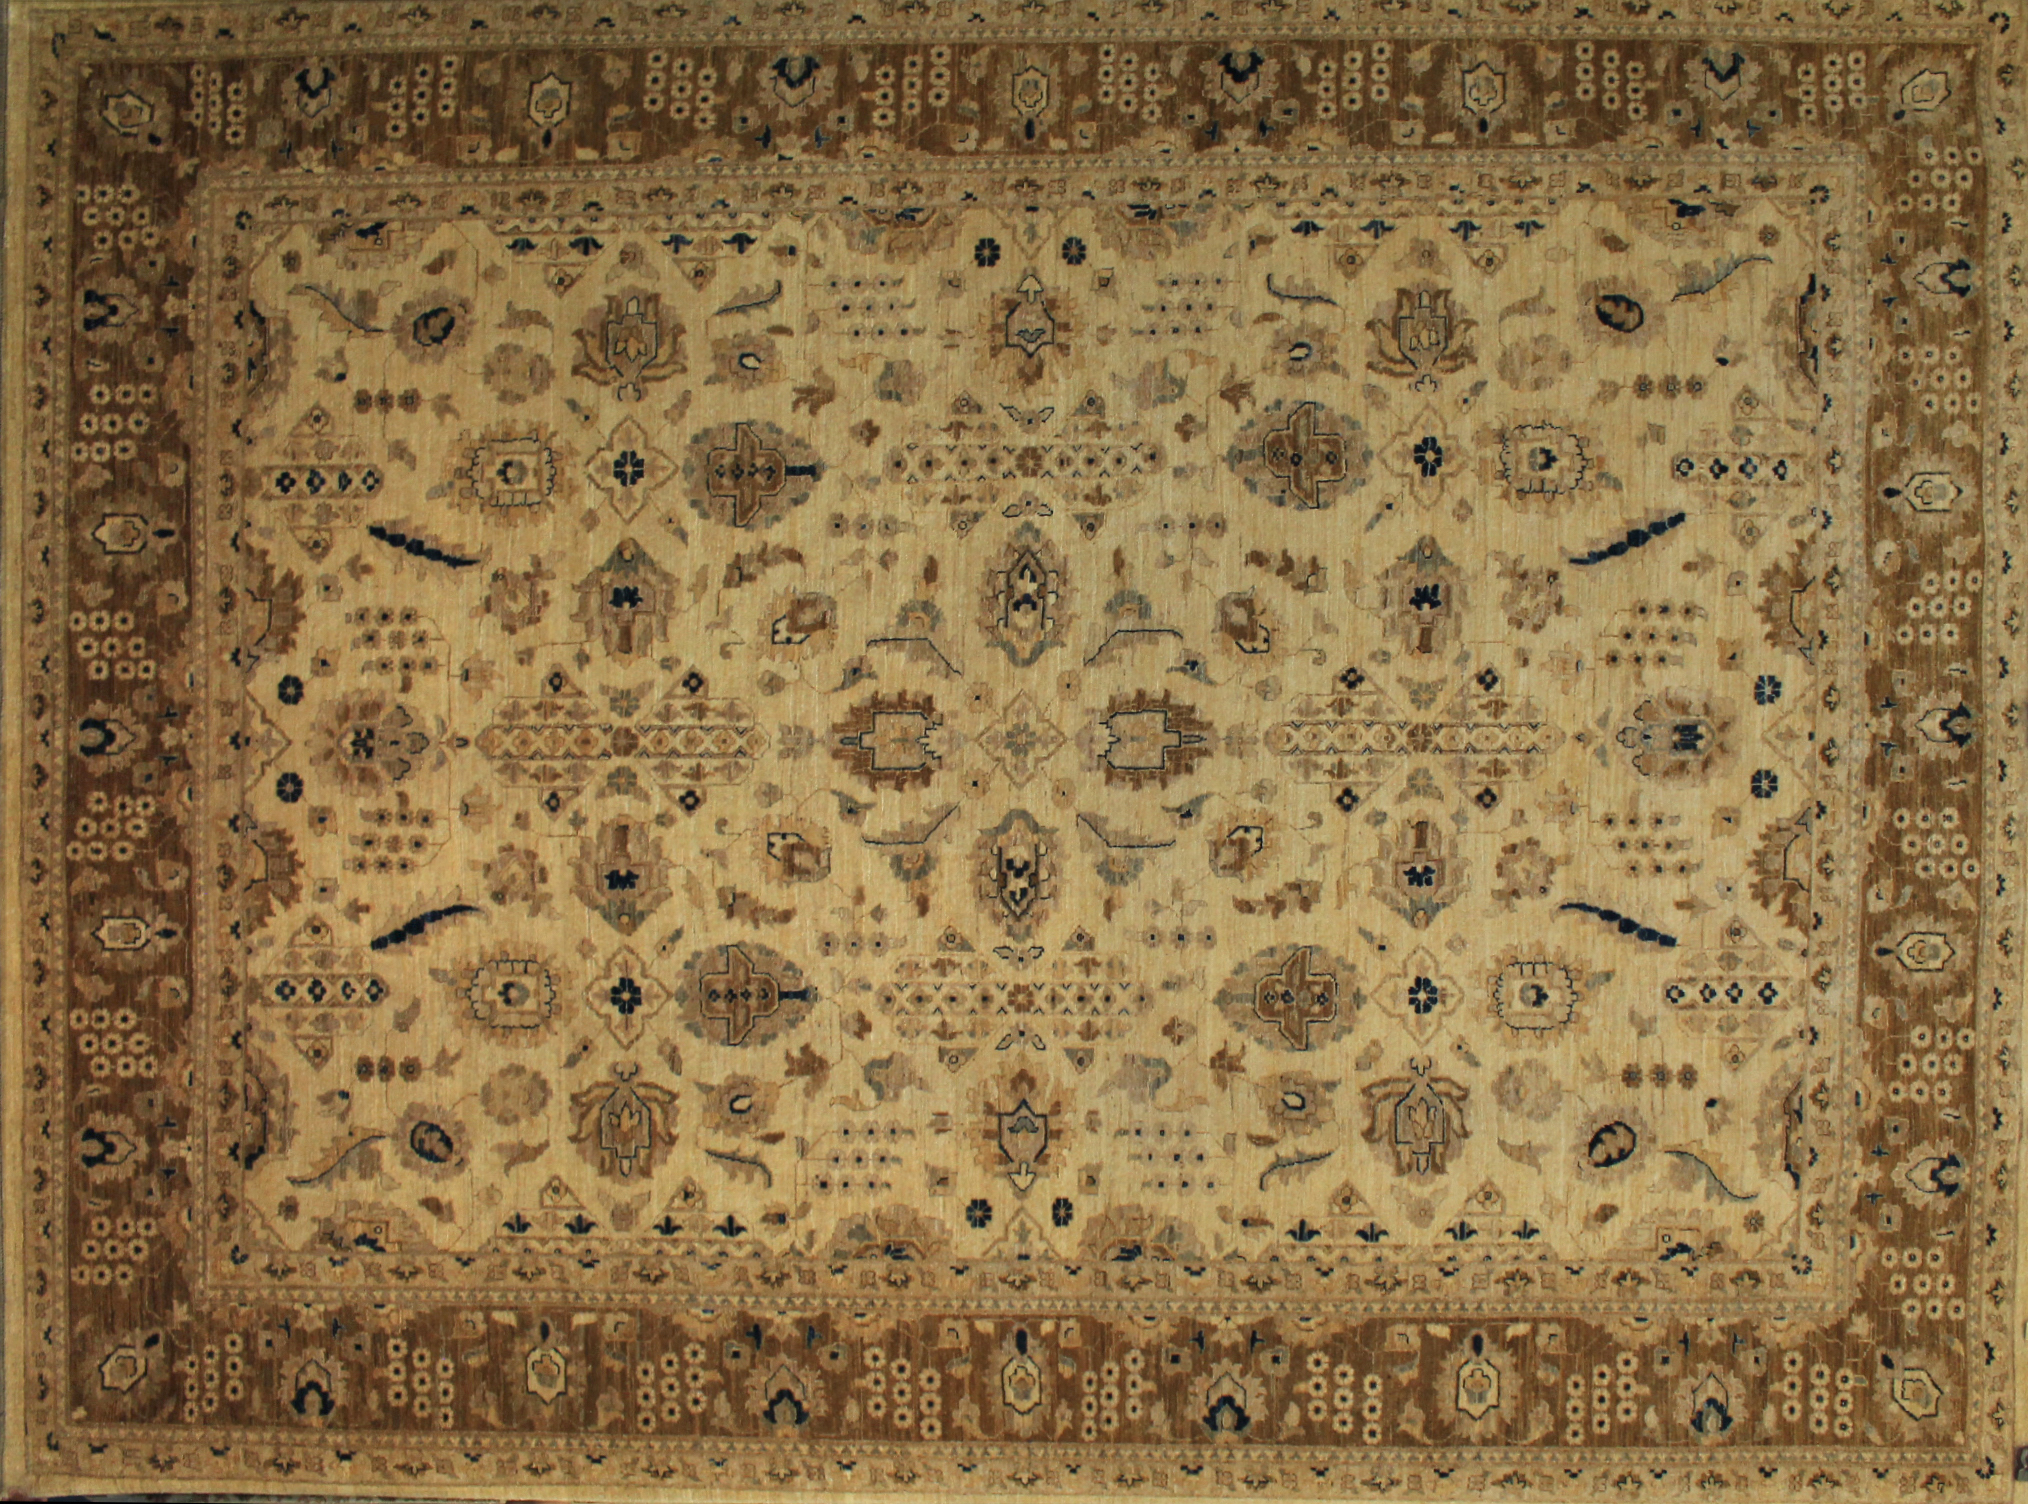 9x12 Peshawar Hand Knotted Wool Area Rug - MR9404